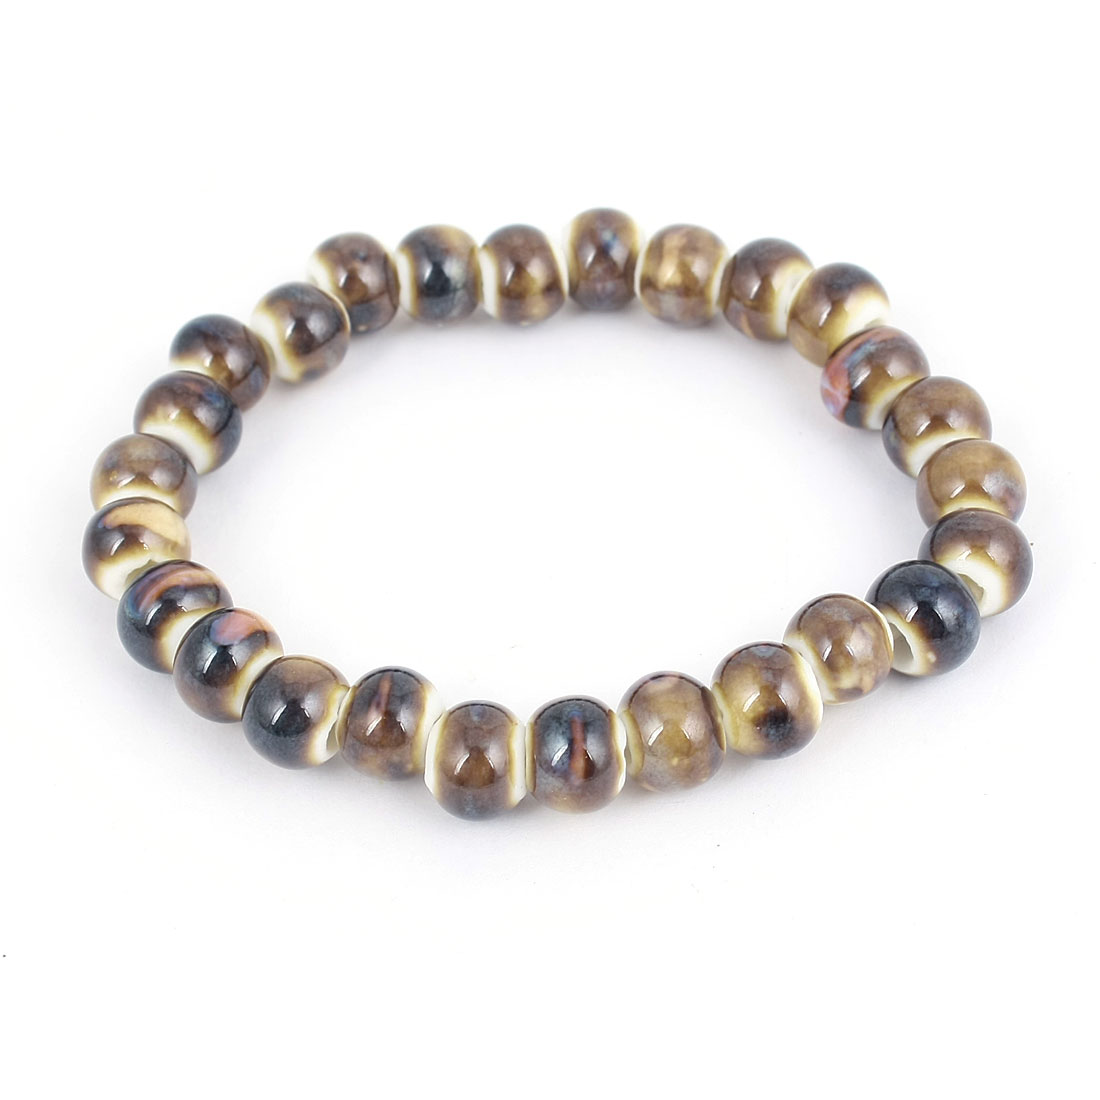 Women Men Ceramic Beads Elastic Wrist Ornamnet Bracelet Brown Black